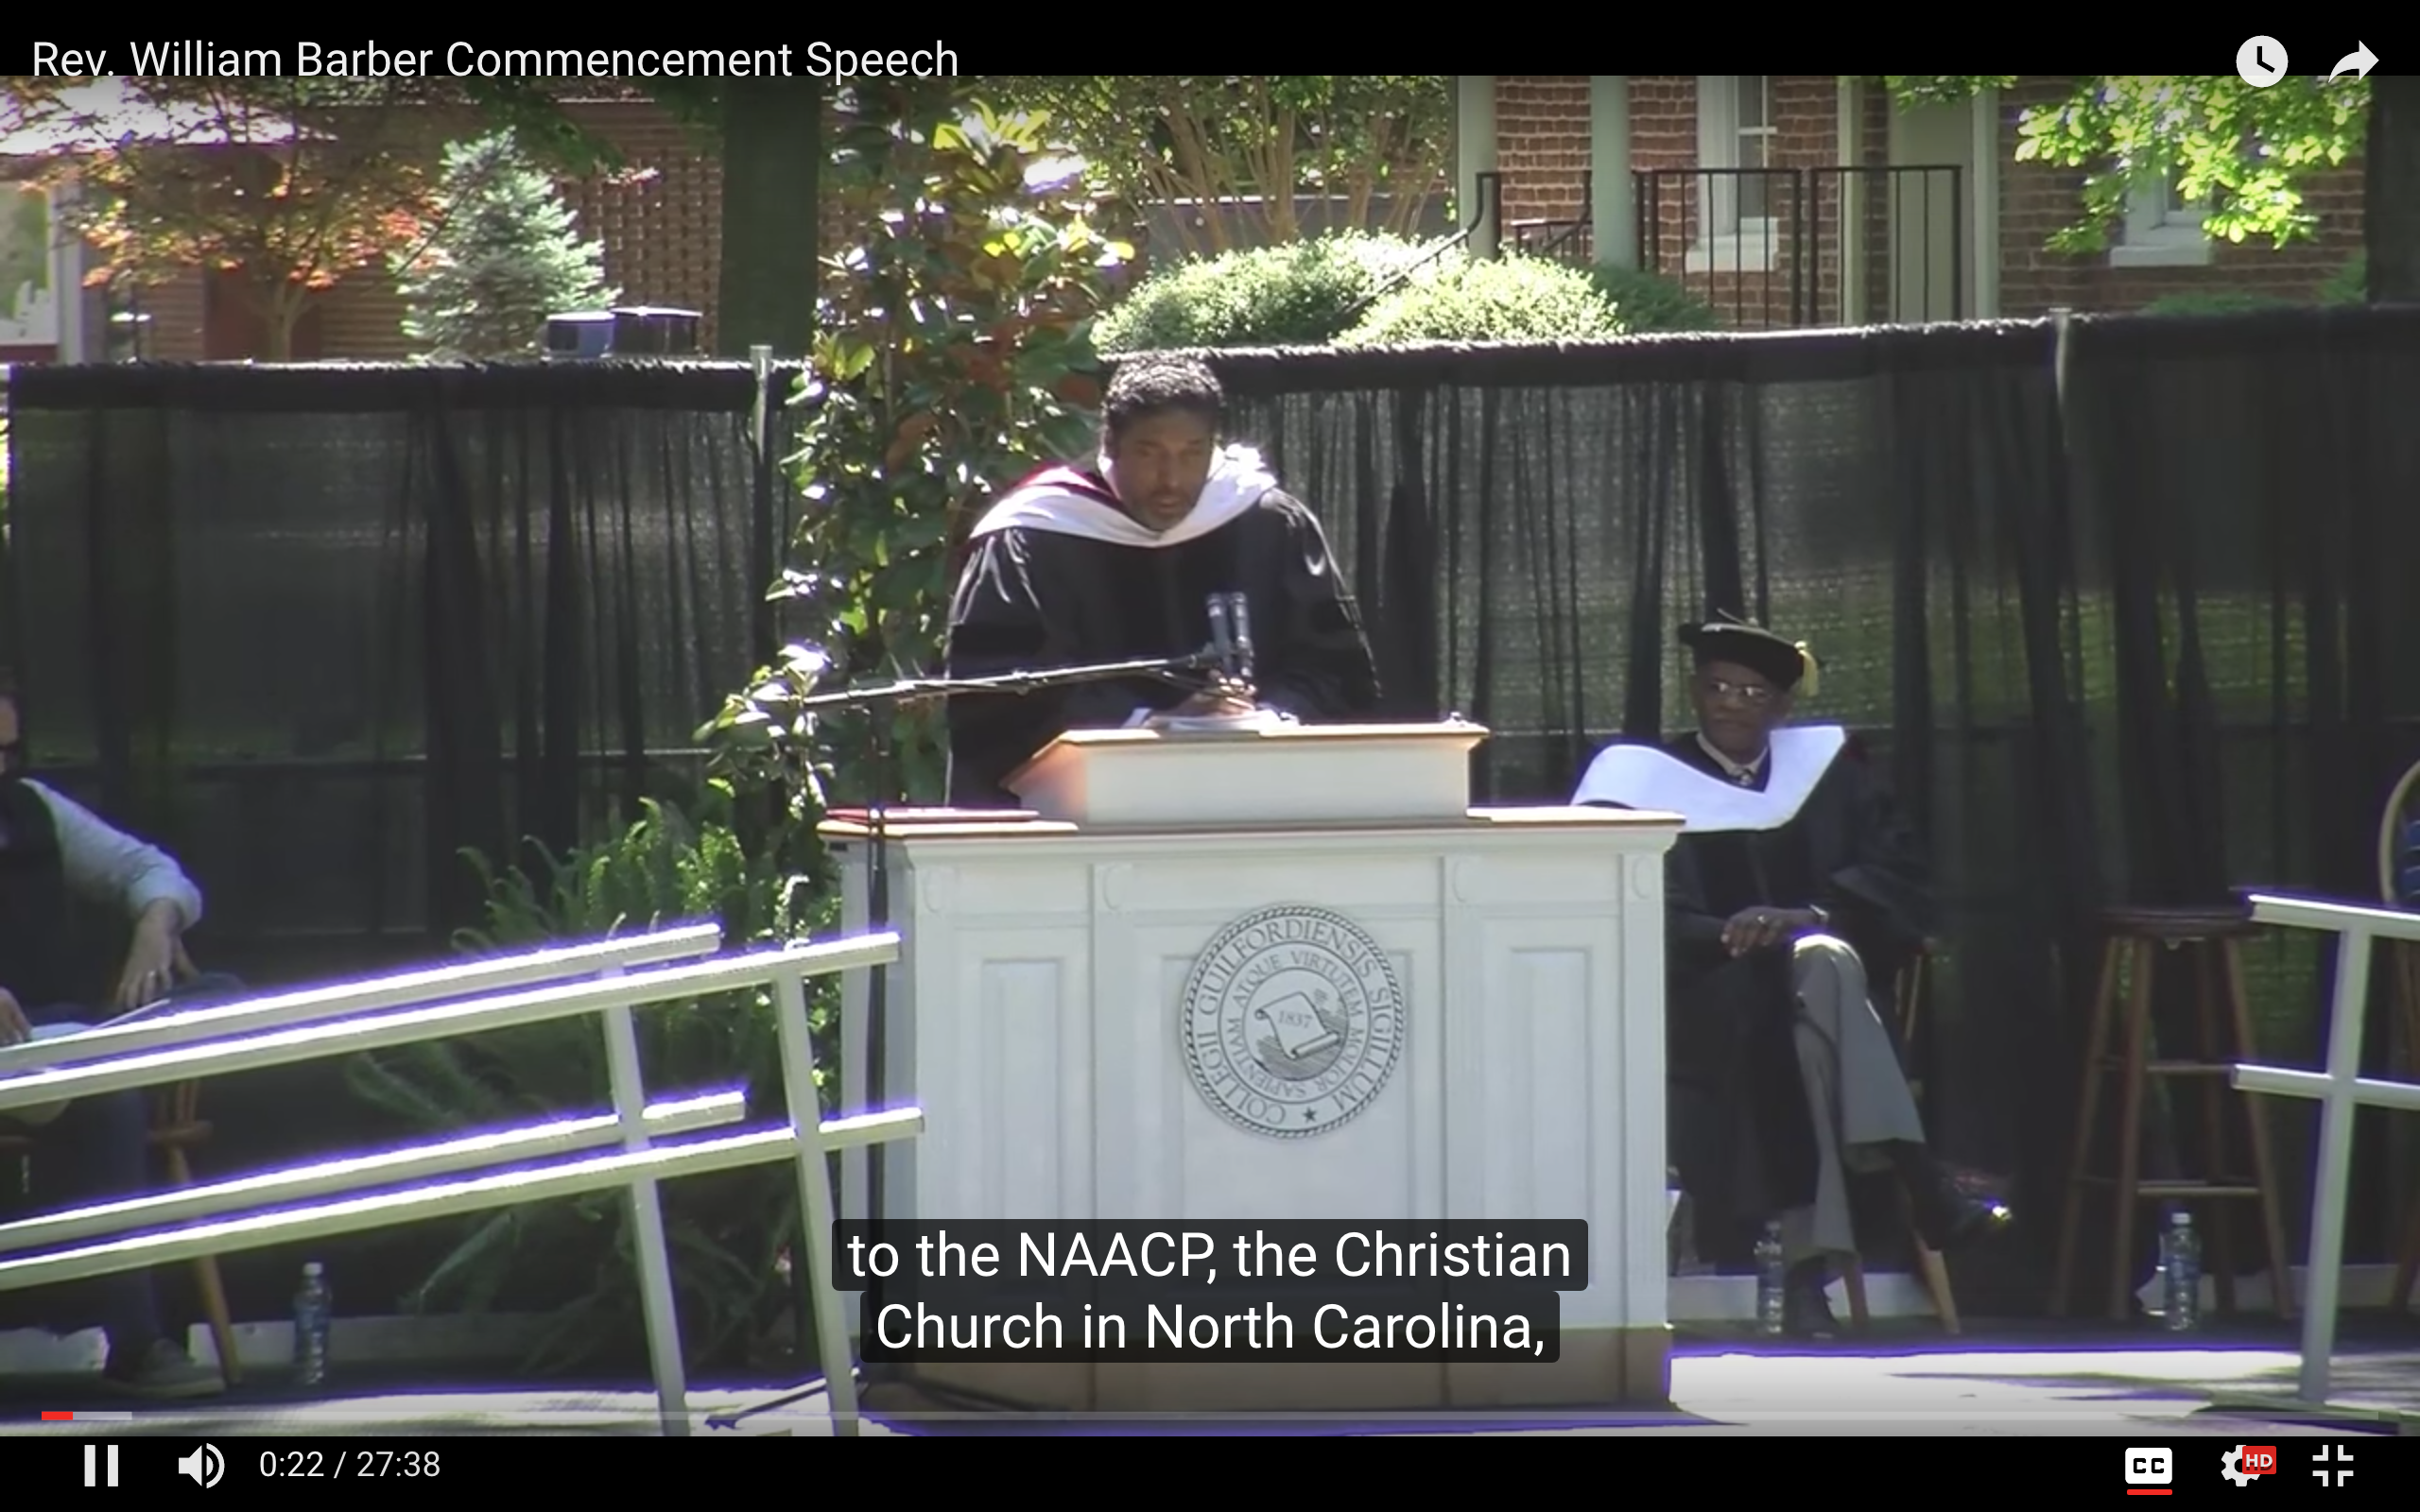 Rev. William Barber Commencement Speech 2016